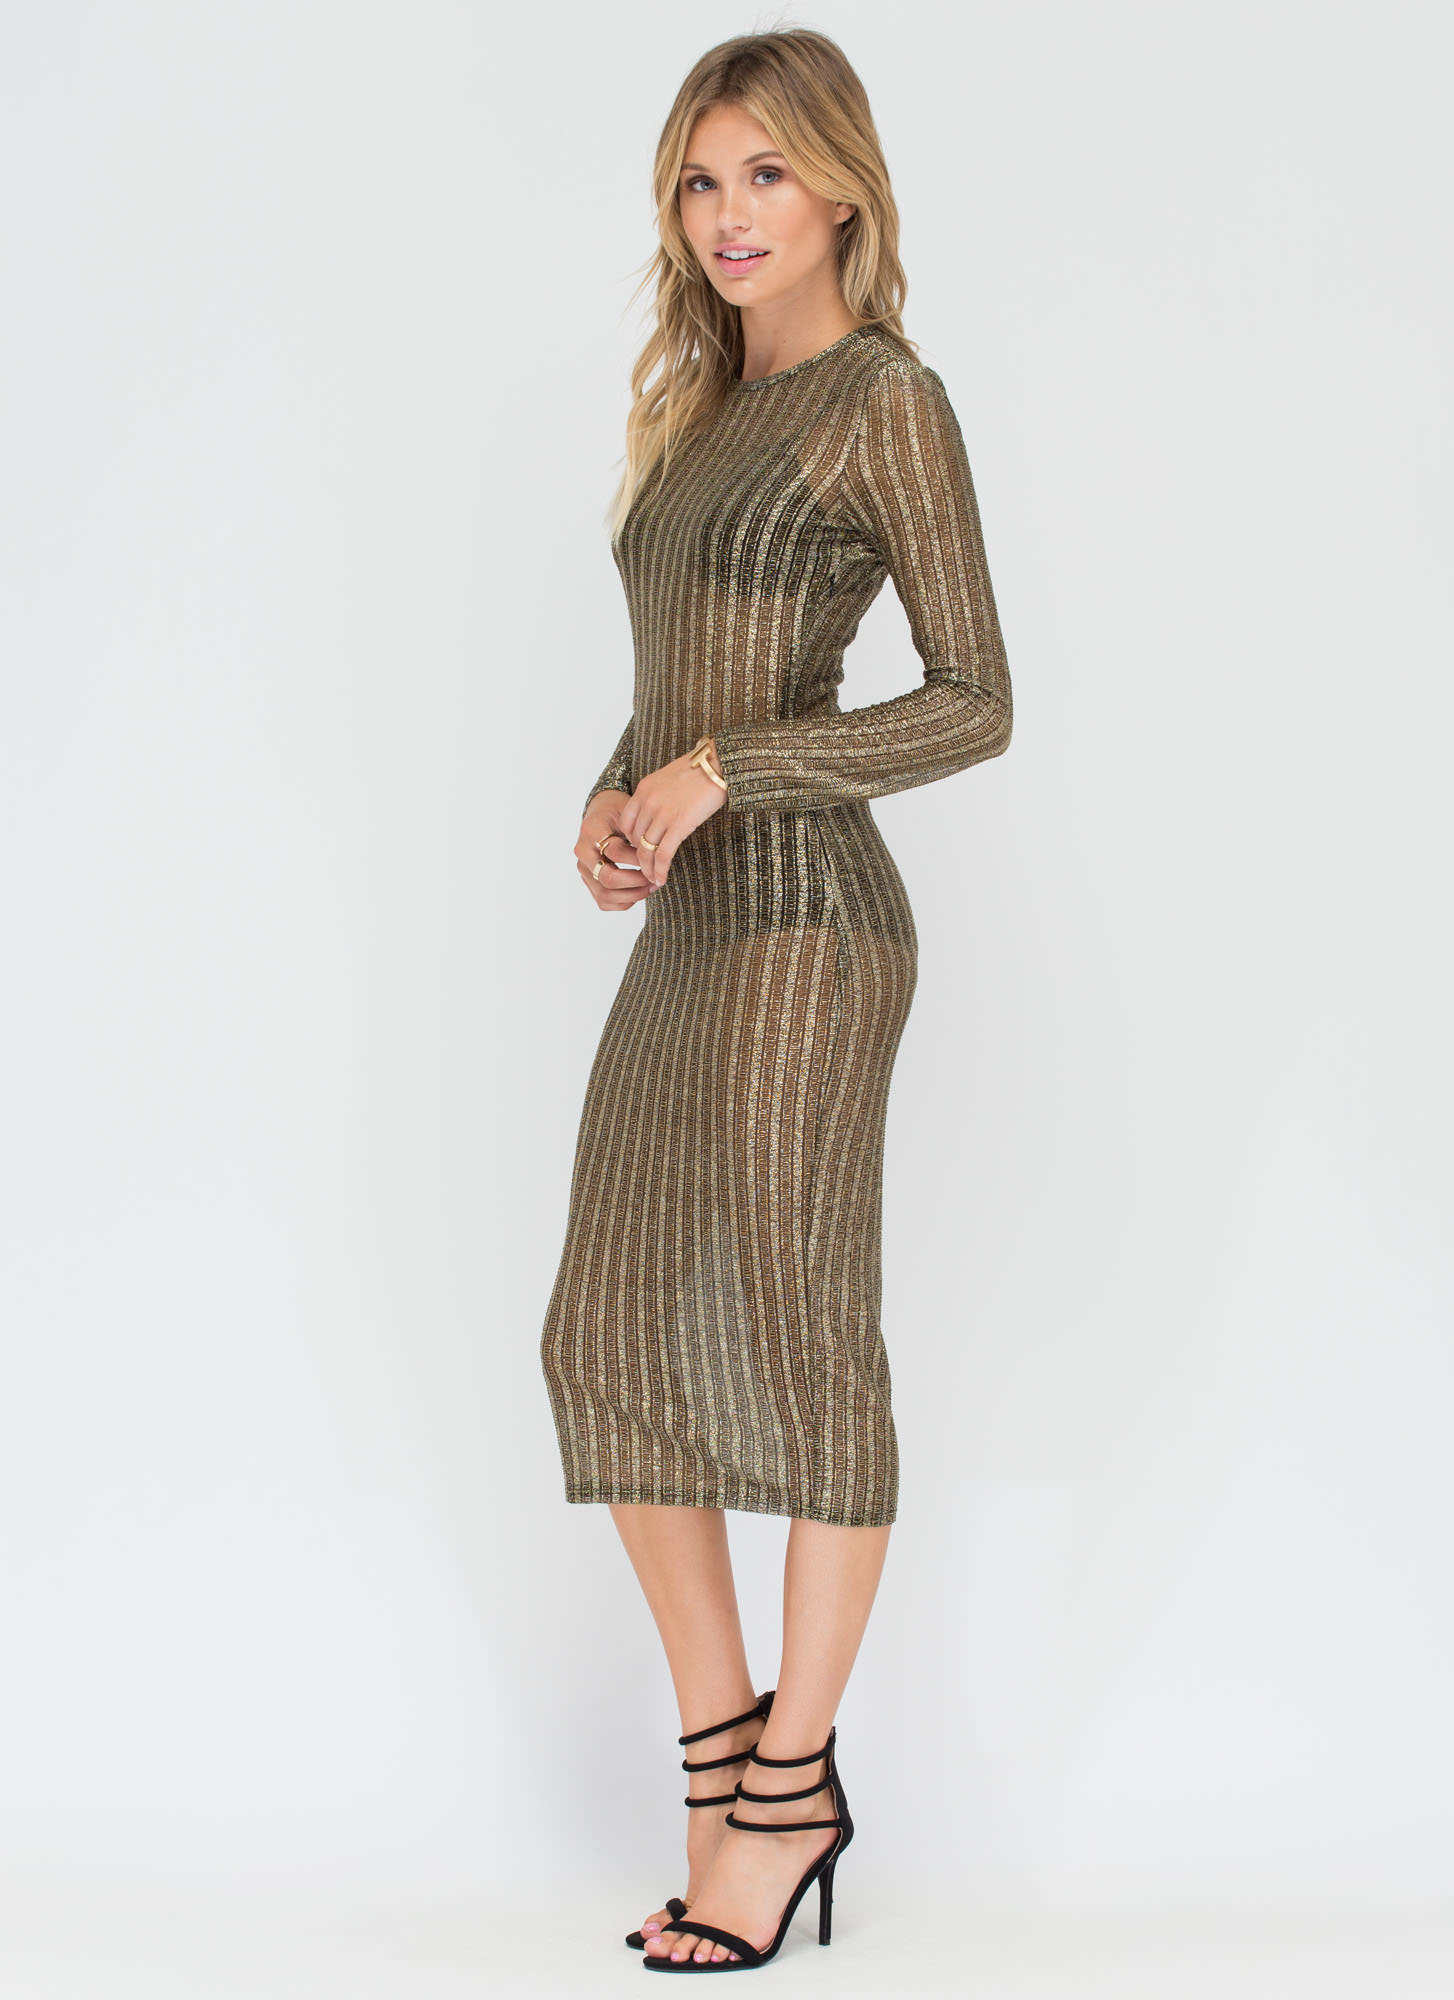 Out Of The Box Sheer Metallic Midi Dress GOLD